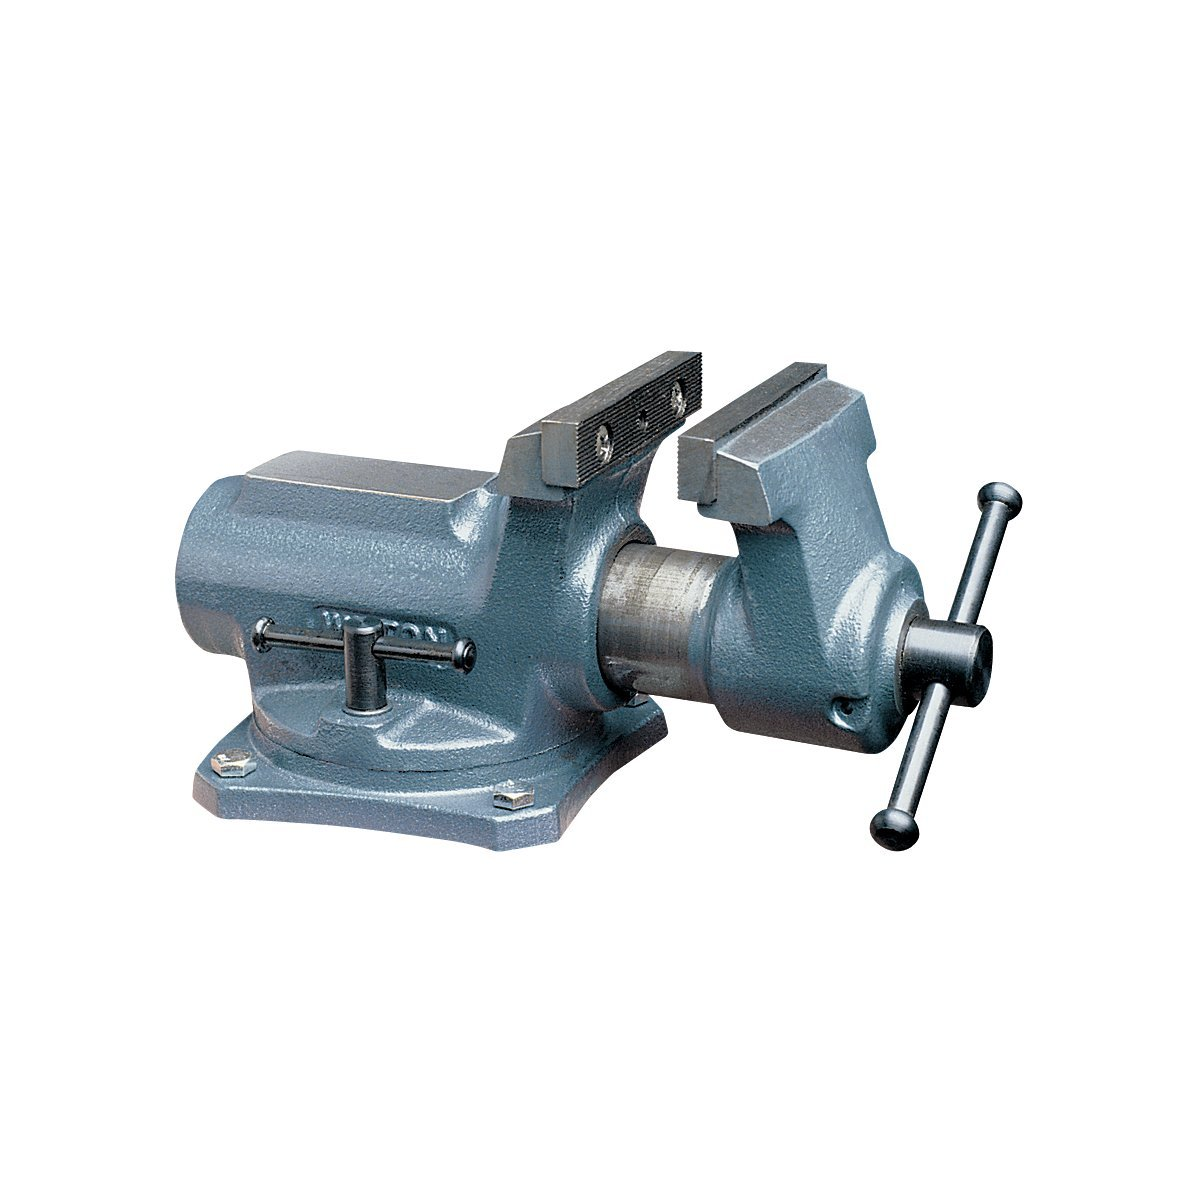 Wilton 63244 Sbv-65, Super-Junior Vise, Swivel Base, 2-1/2-Inch Jaw Width, 2-1/8-Inch Jaw Opening